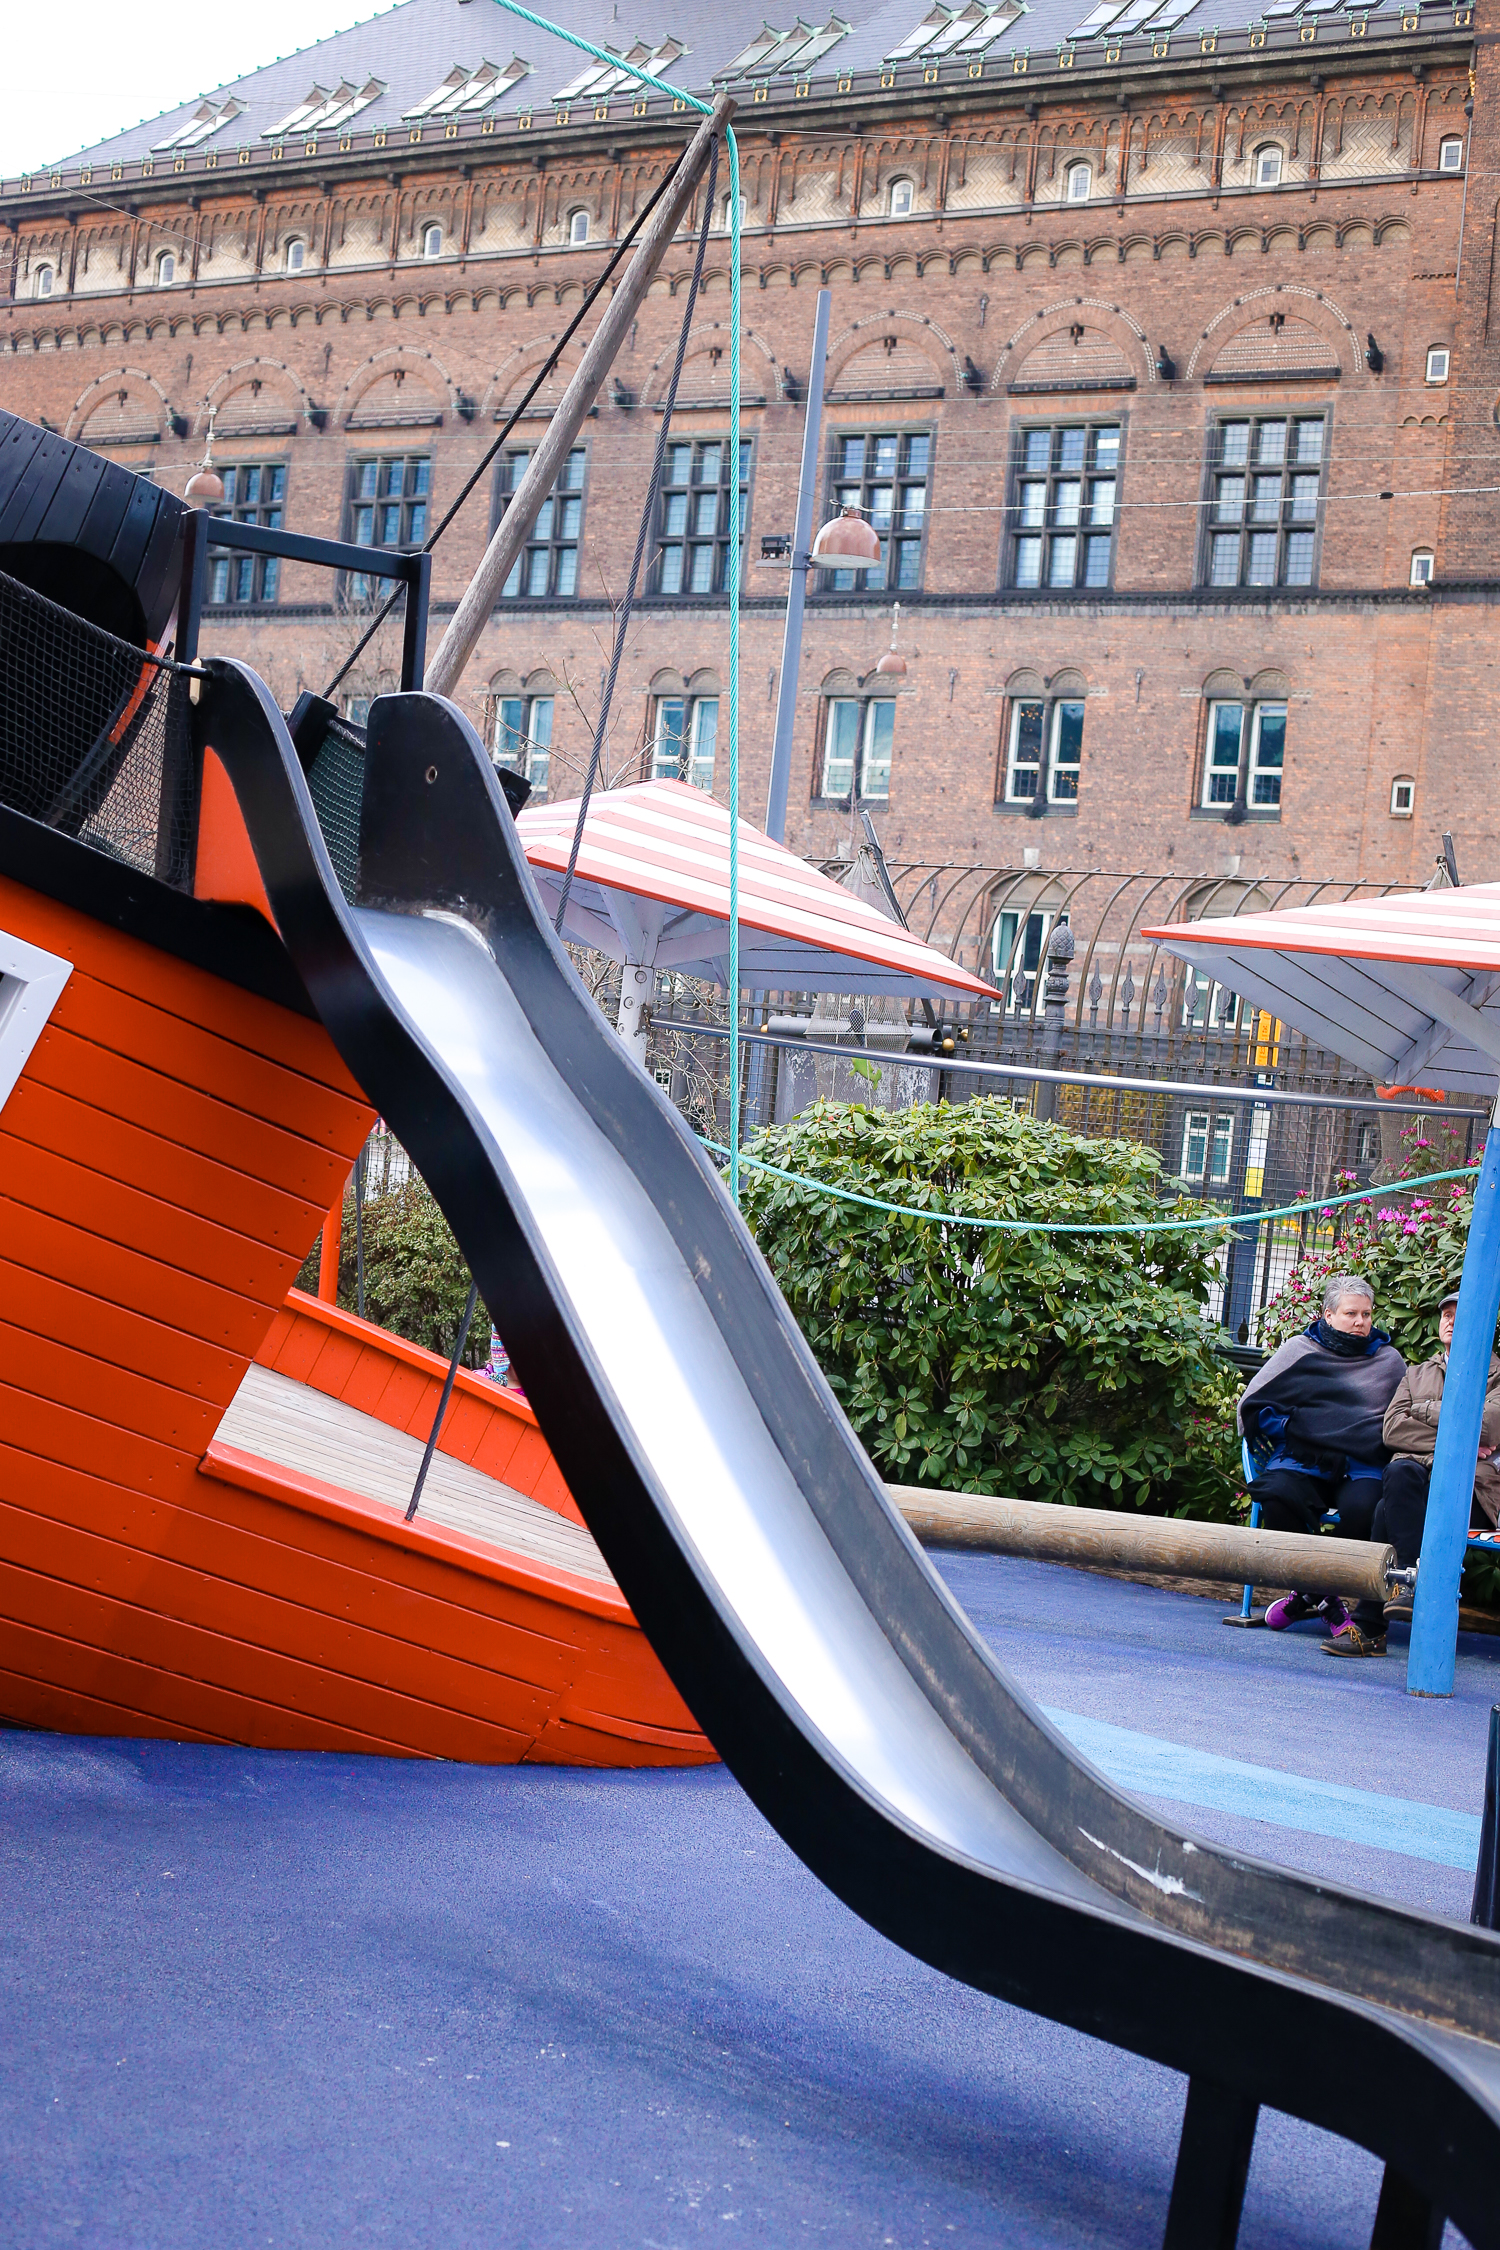 Don't miss out on taking your kids to the children's playground at Tivoli Gardens in Copenhagen, Denmark - it's full of surprises!